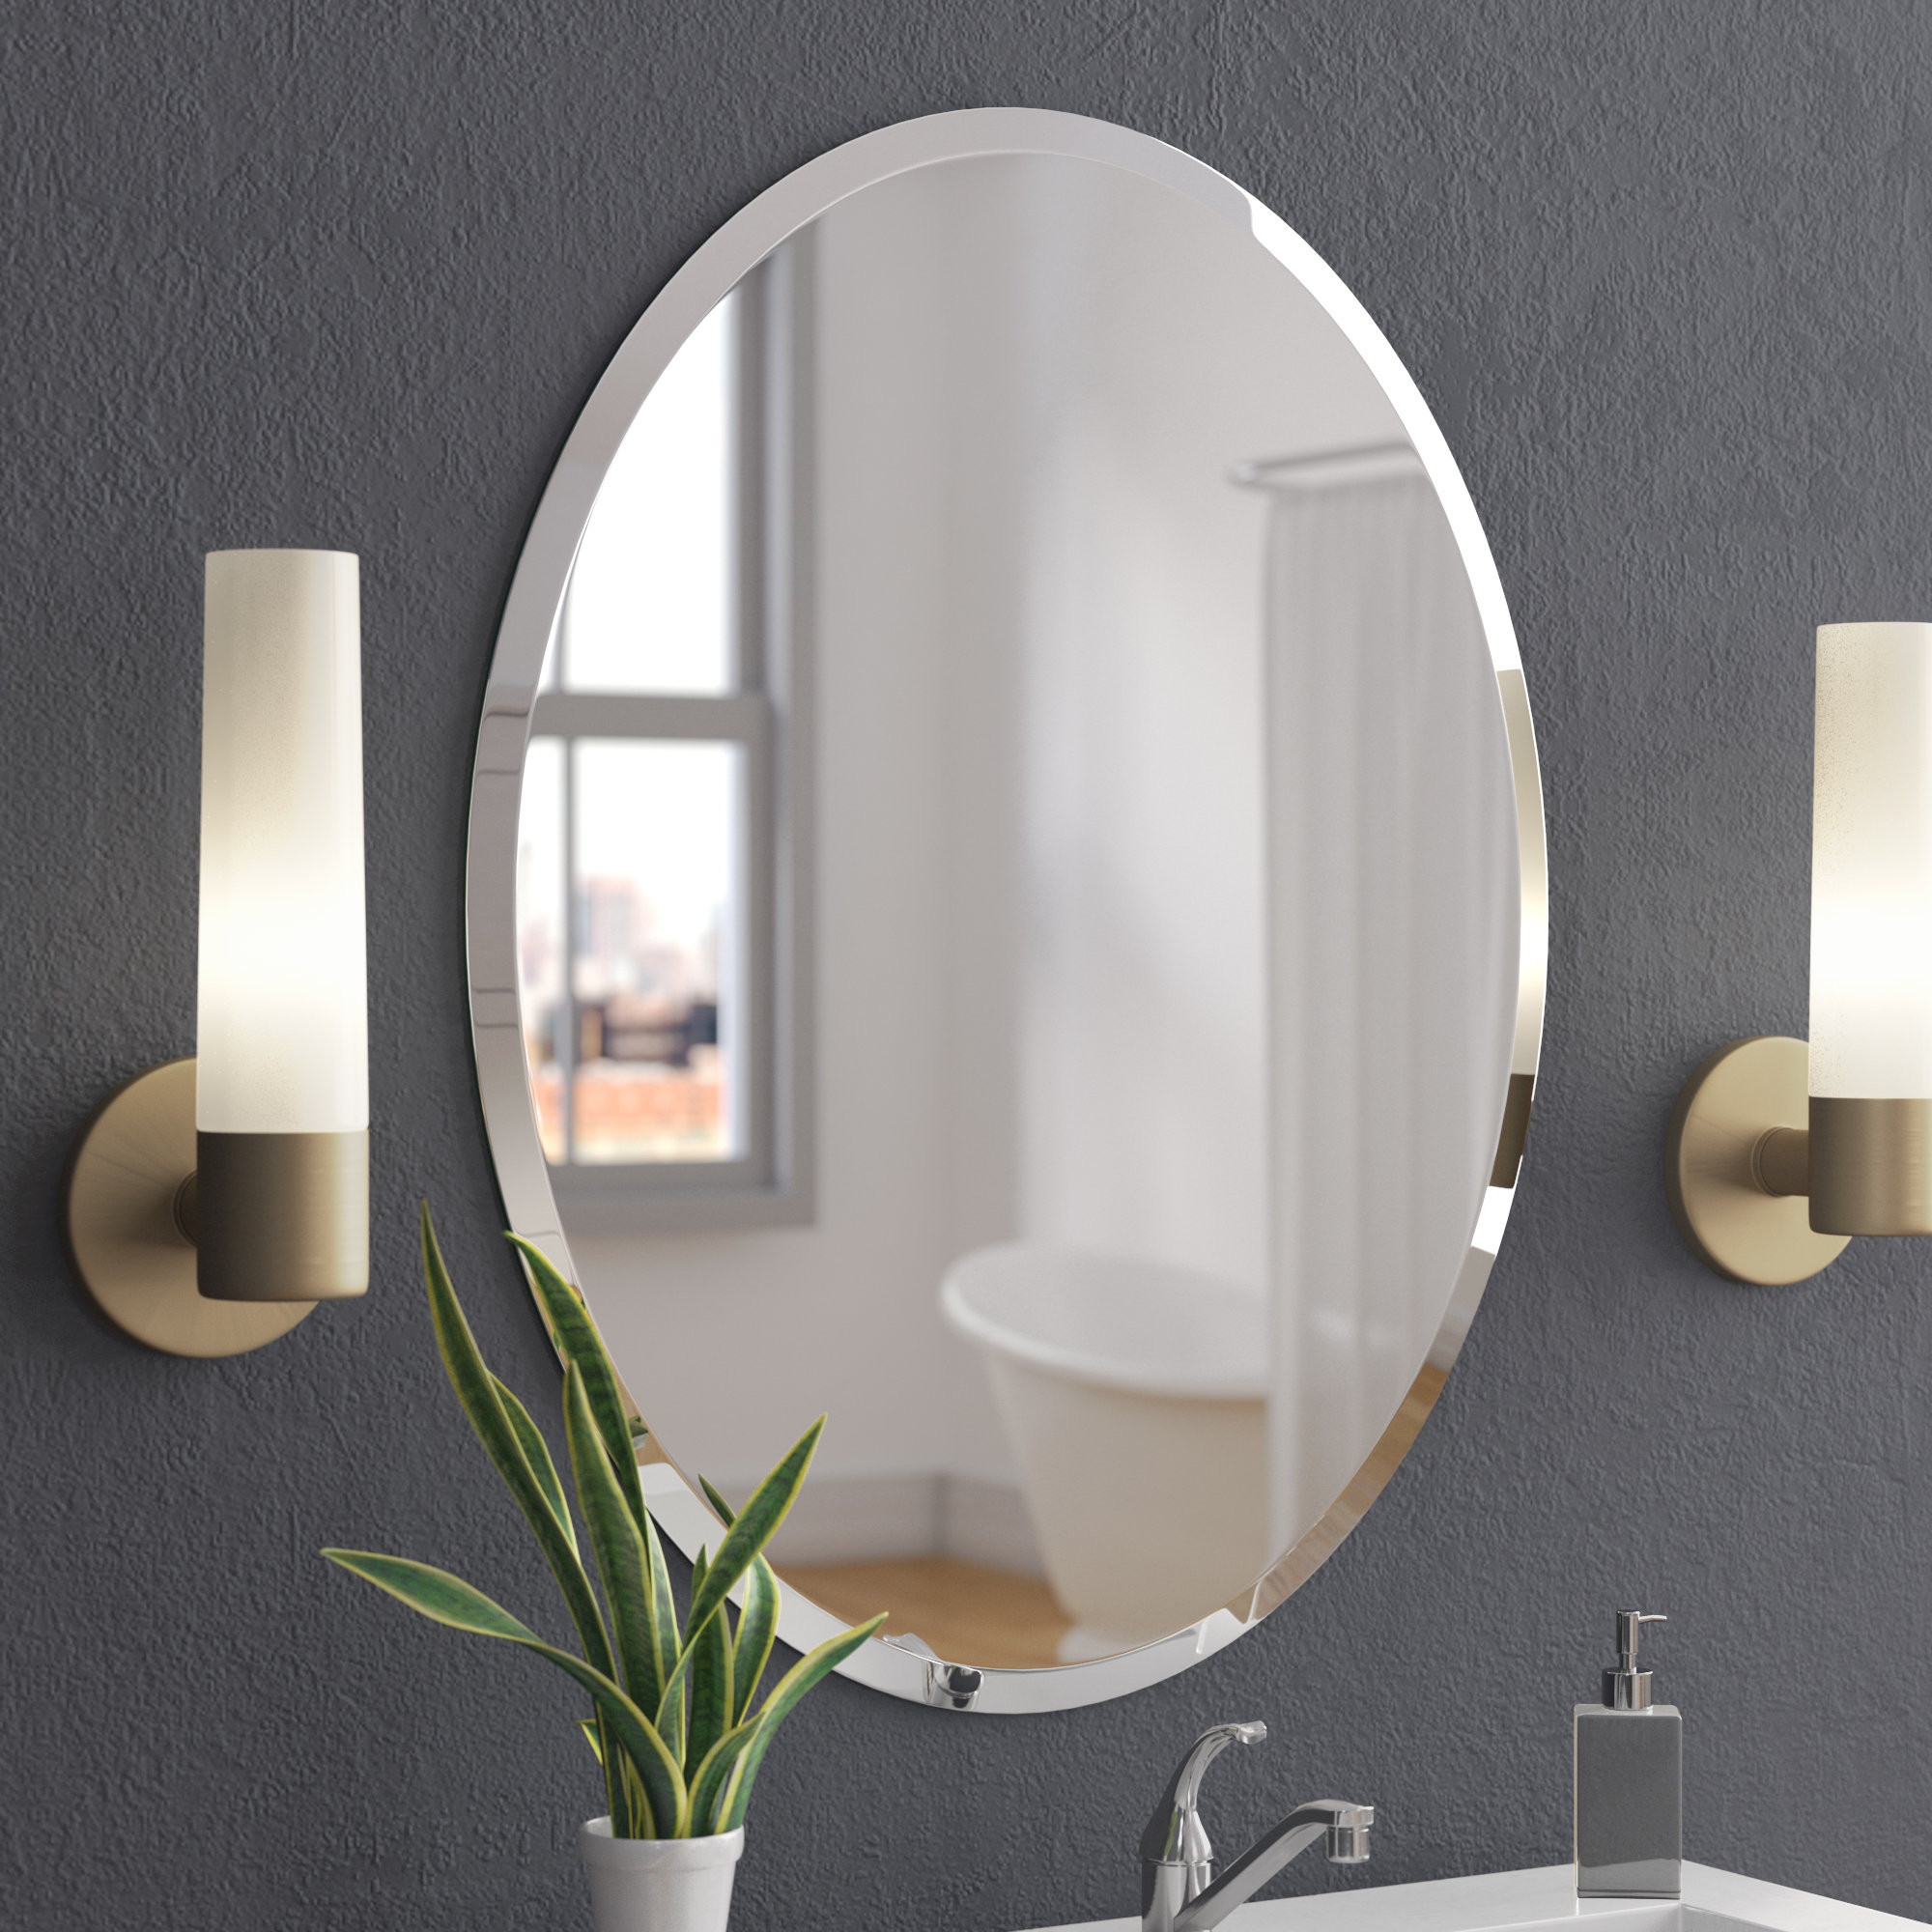 Etched Frameless Wall Mirror | Wayfair For Wallingford Large Frameless Wall Mirrors (View 3 of 30)